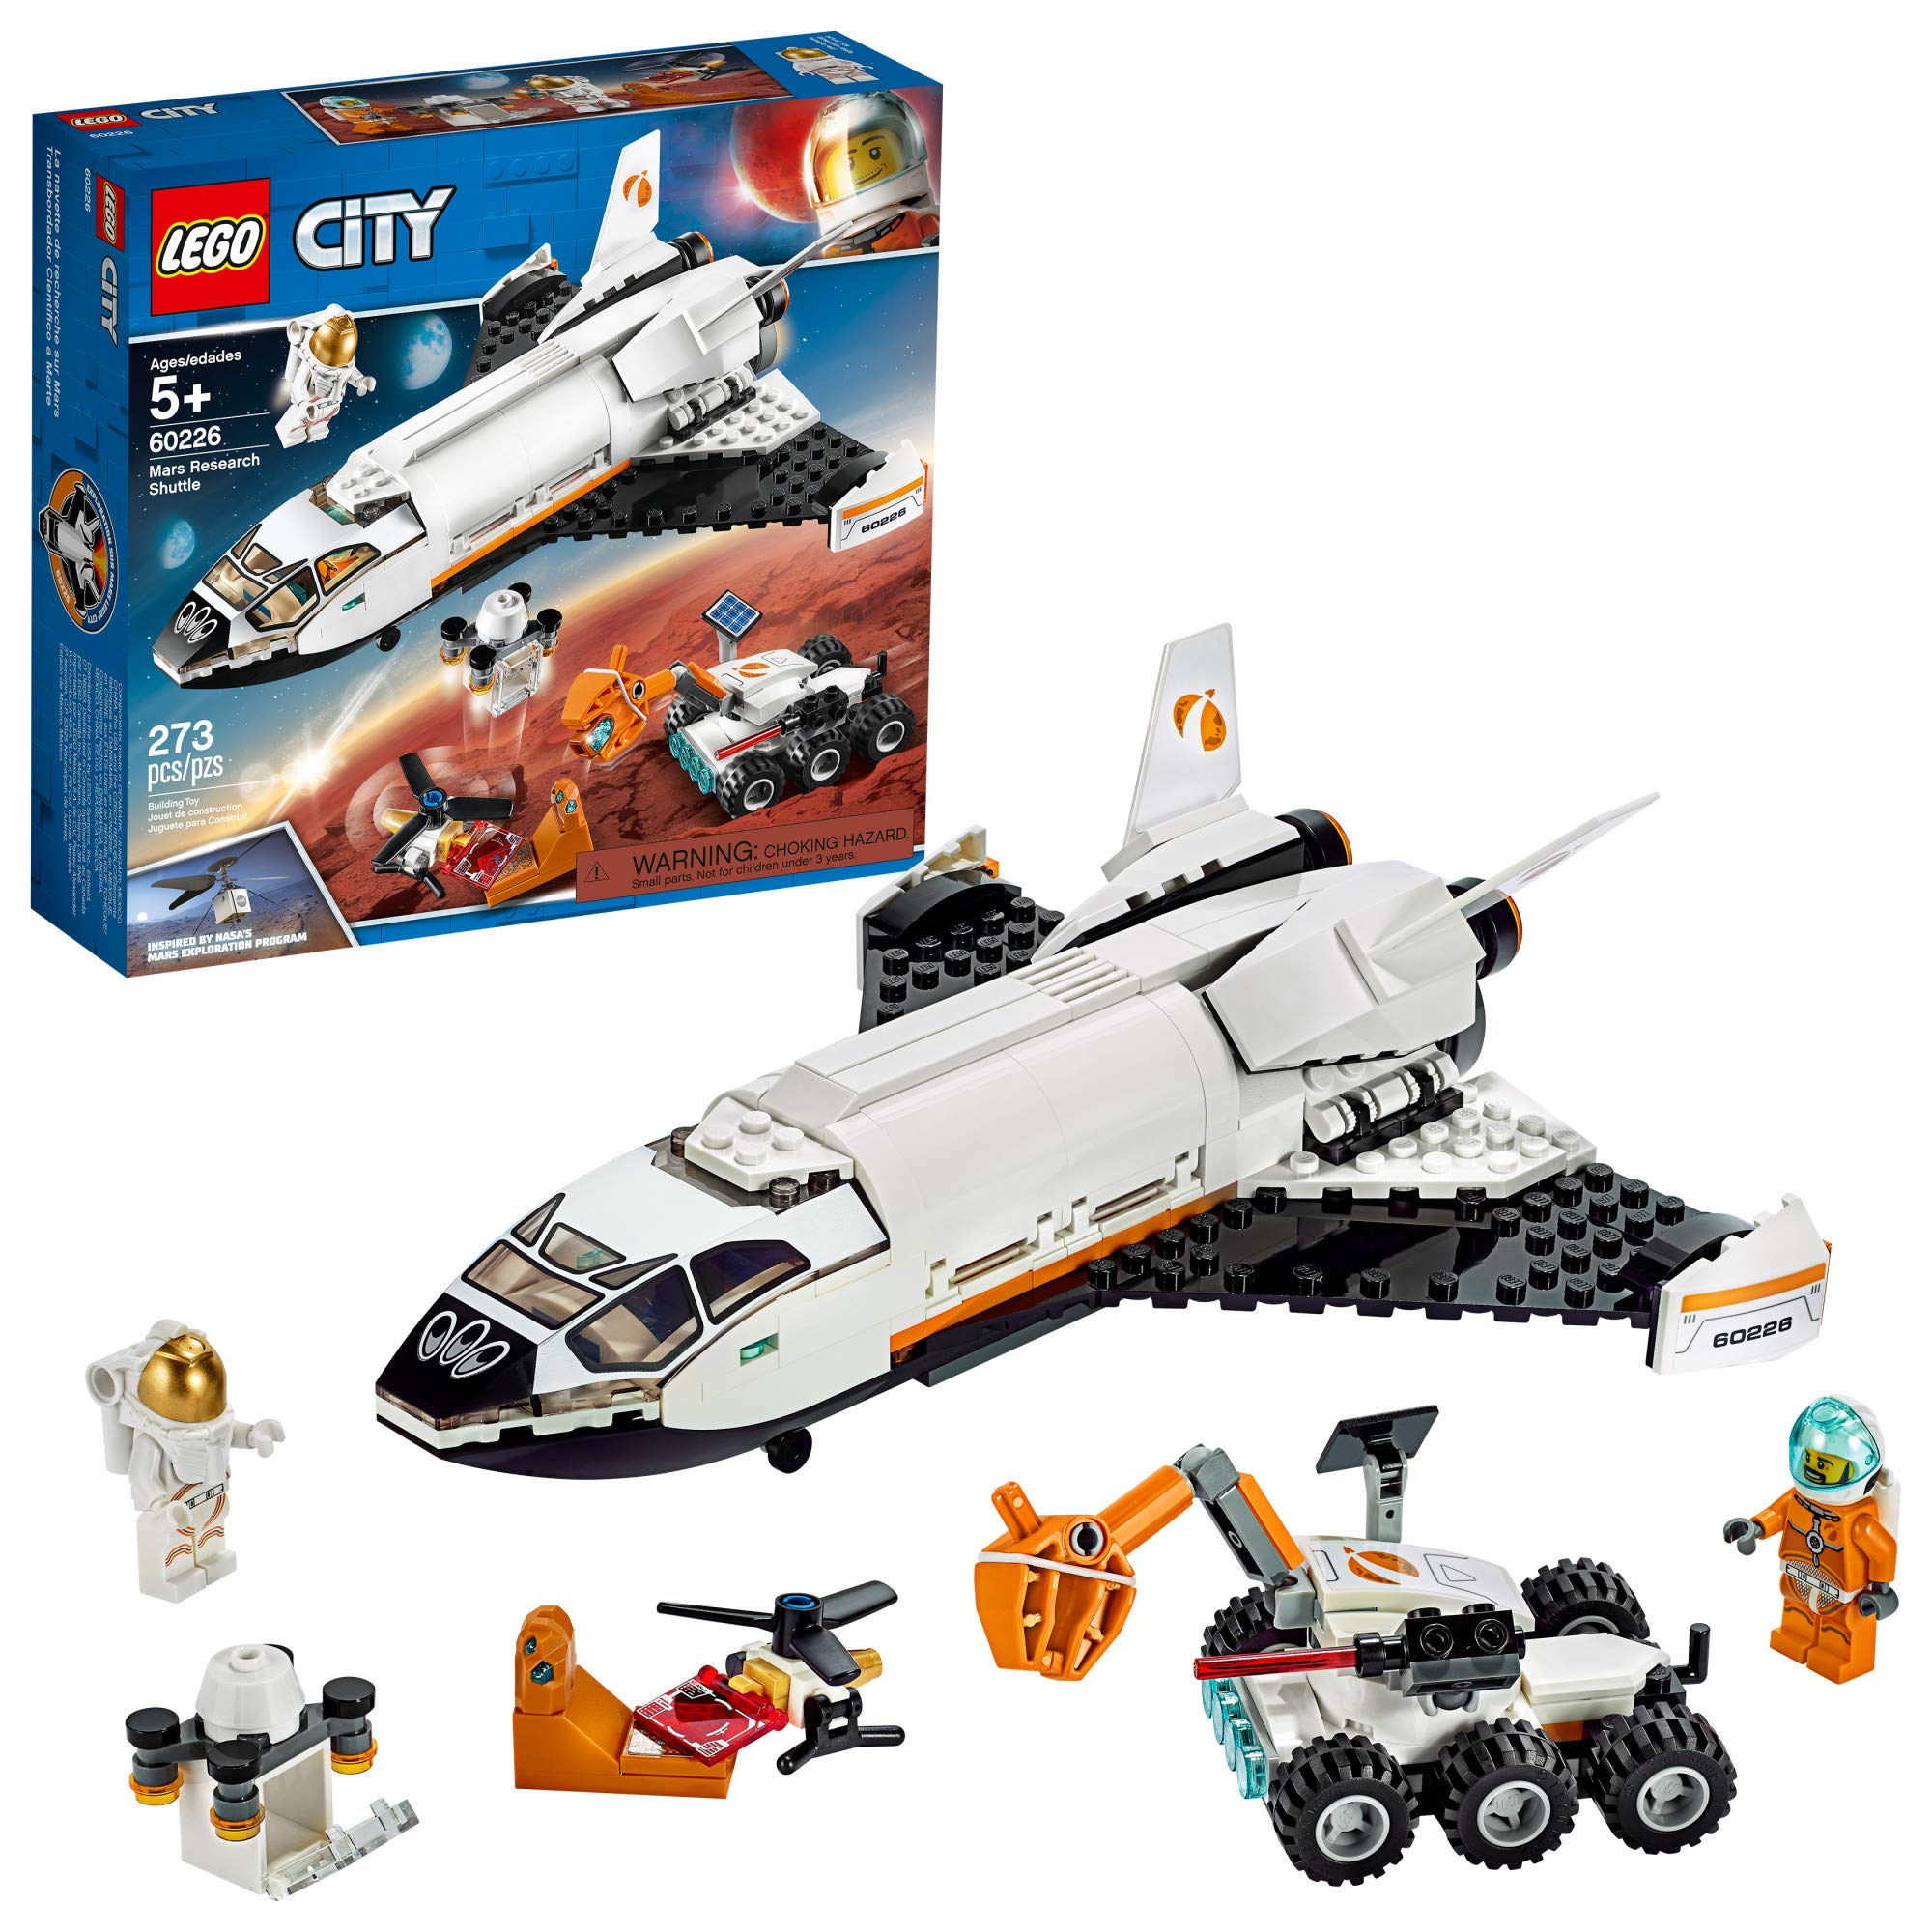 LEGO City Space Mars Research Shuttle 60226 Space Shuttle Toy Building Kit with Mars Rover and Astronaut Minifigures, Top STEM Toy for Boys and Girls, New 2019 (273 Pieces) by LEGO